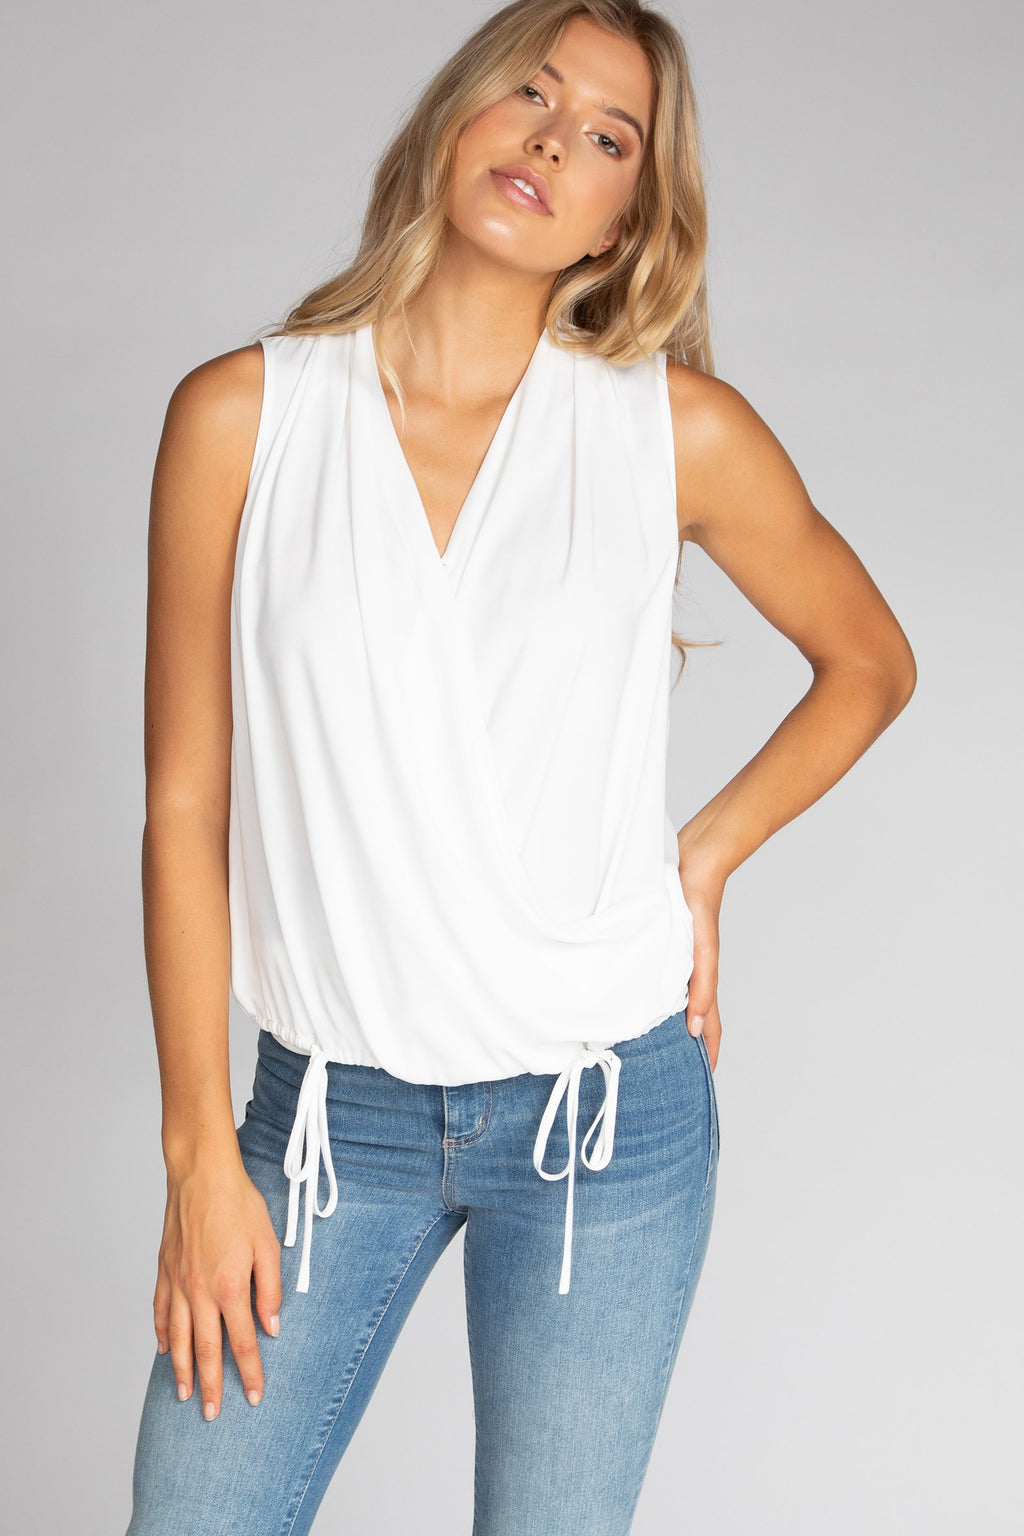 LAST CALL SIZE S | Draped Sleeveless Top with Tie Detail in Off White